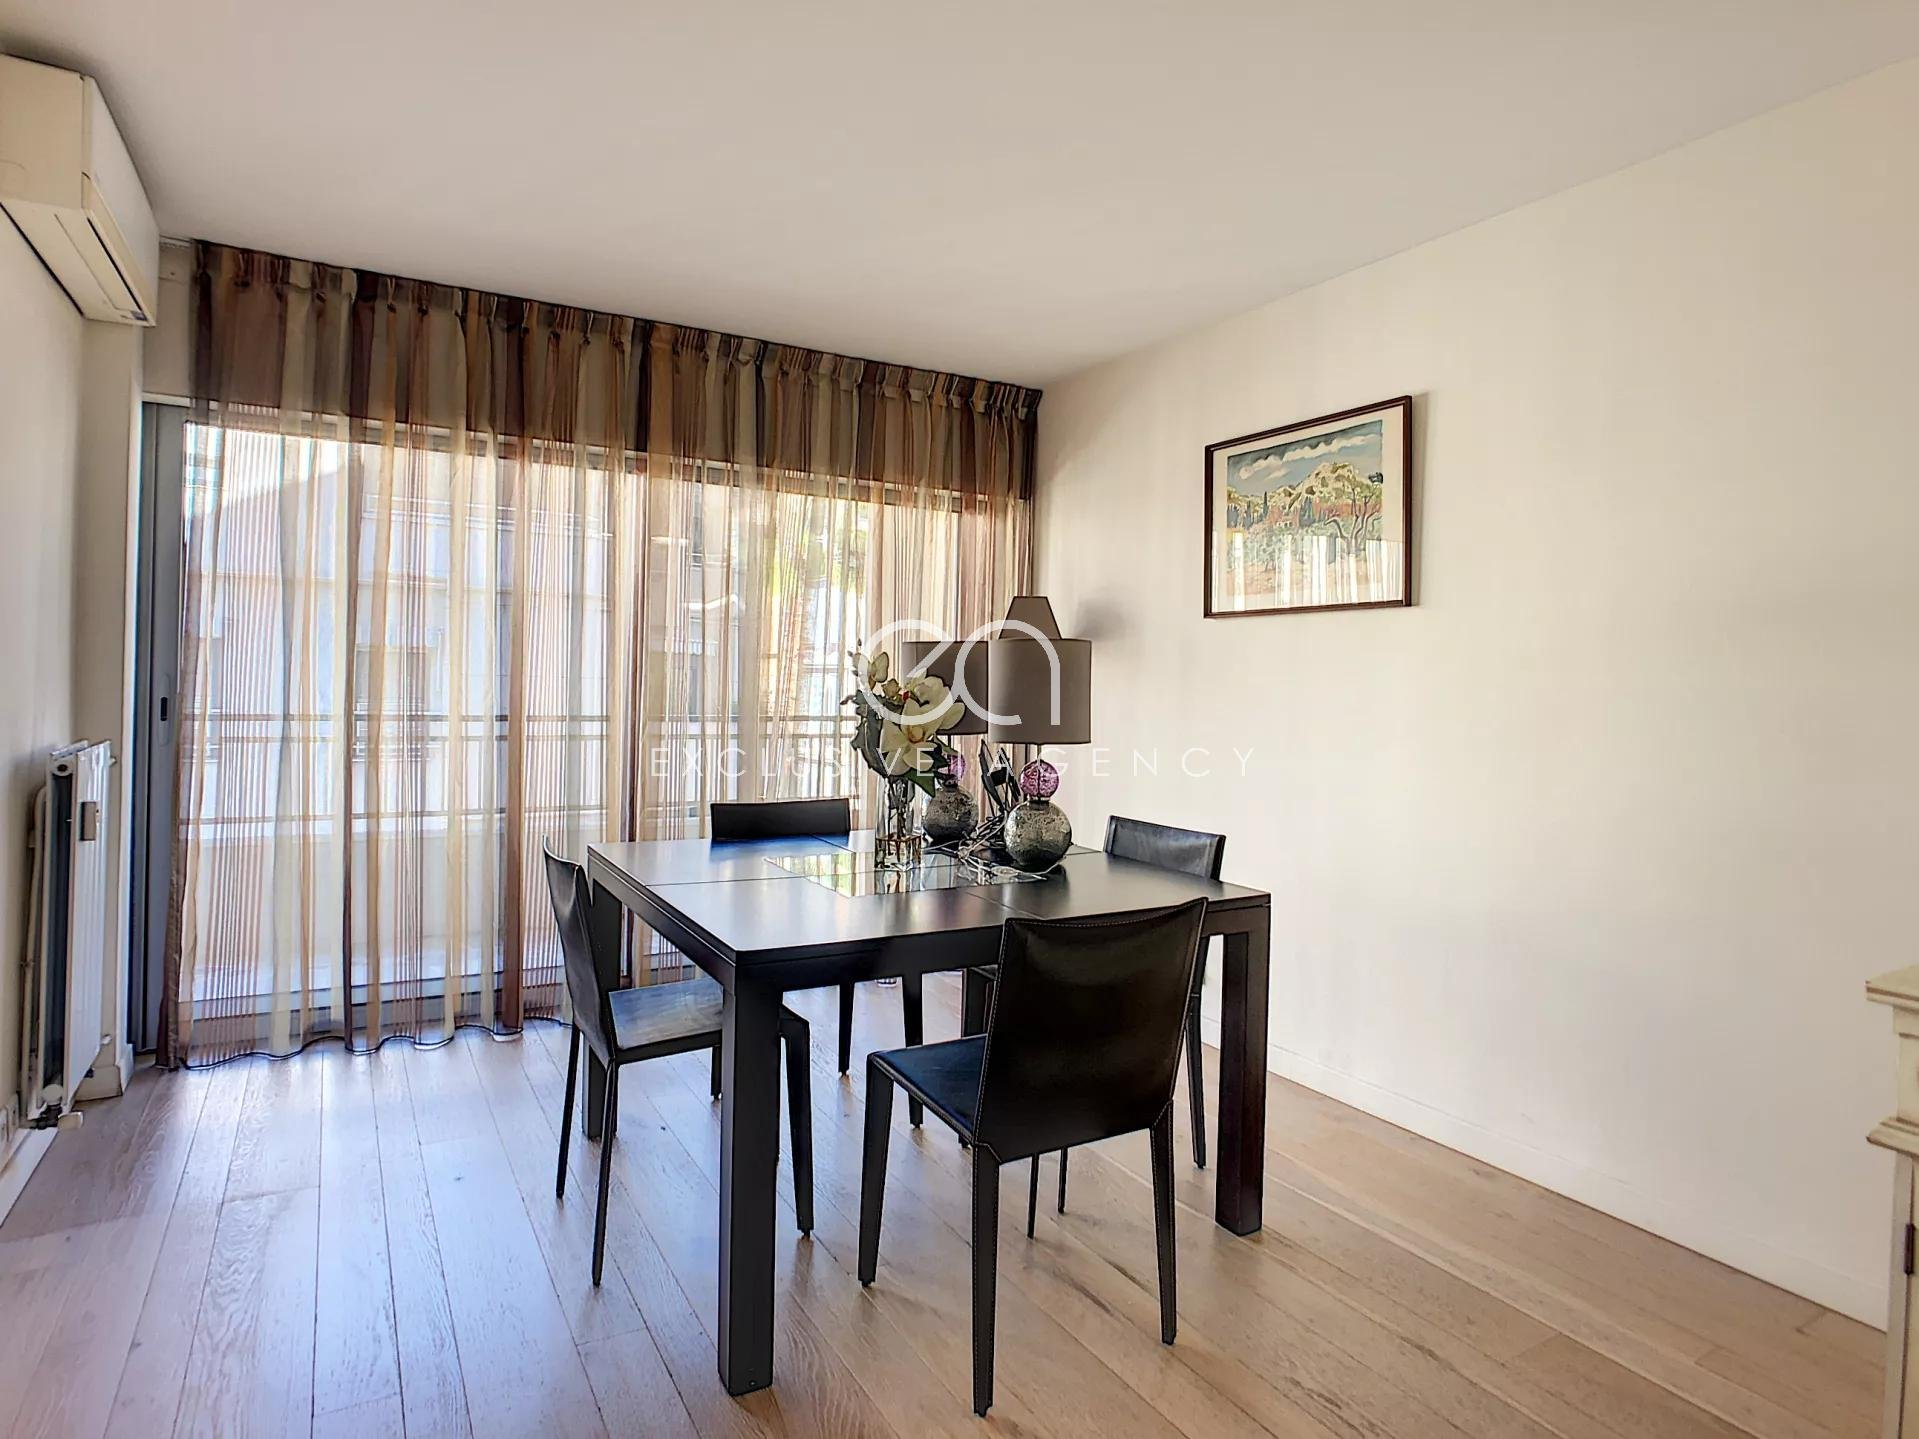 Cannes Rond Point Duboys d'Angers 3-bedrooms apartment 112sqm parking and cellar.